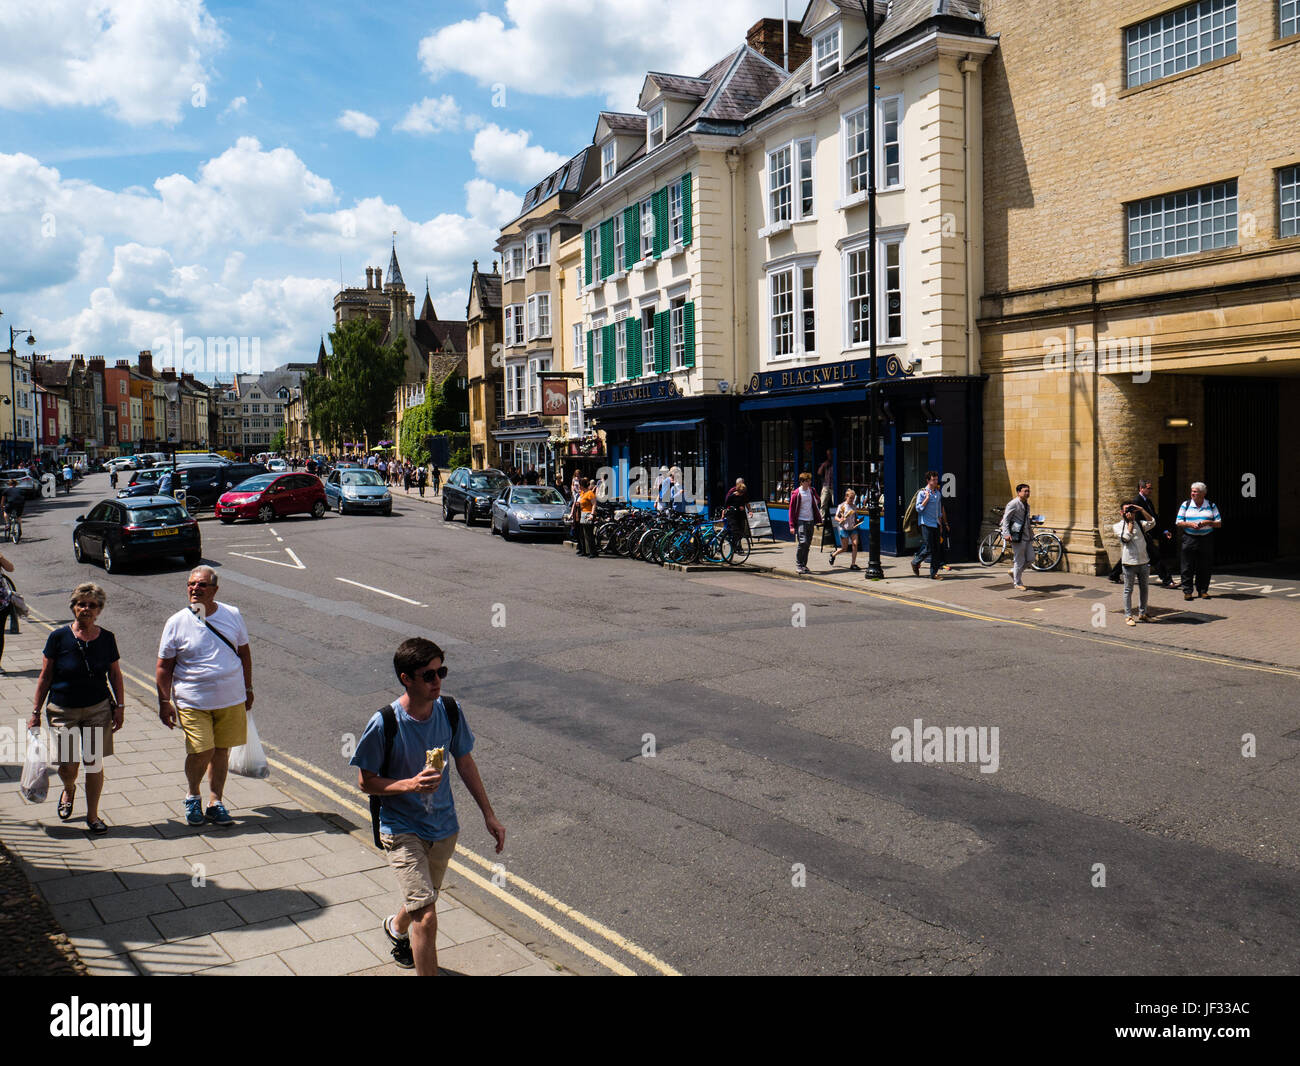 People Walking on Broad Street, Oxford, Oxfordshire, England - Stock Image